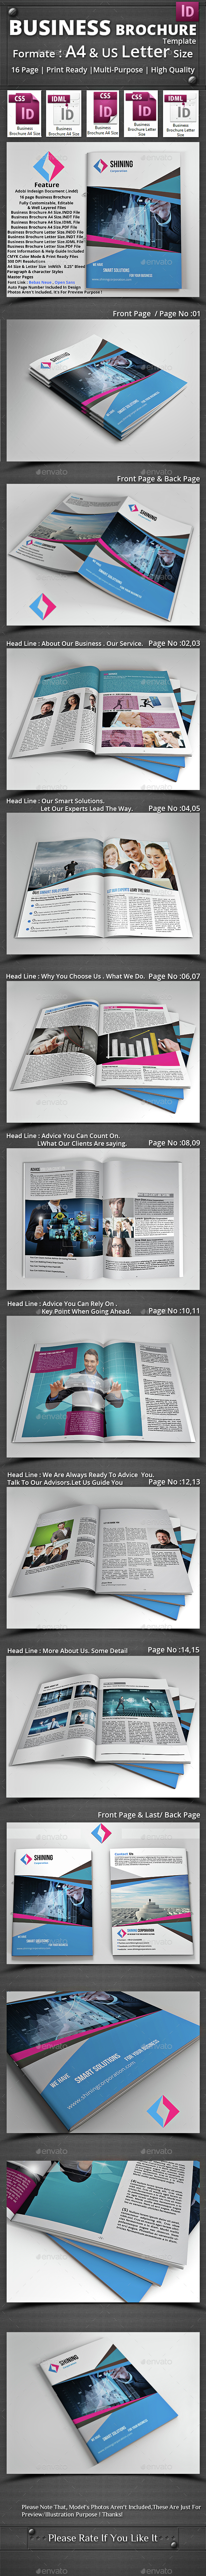 Business Brochure Template - Brochures Print Templates